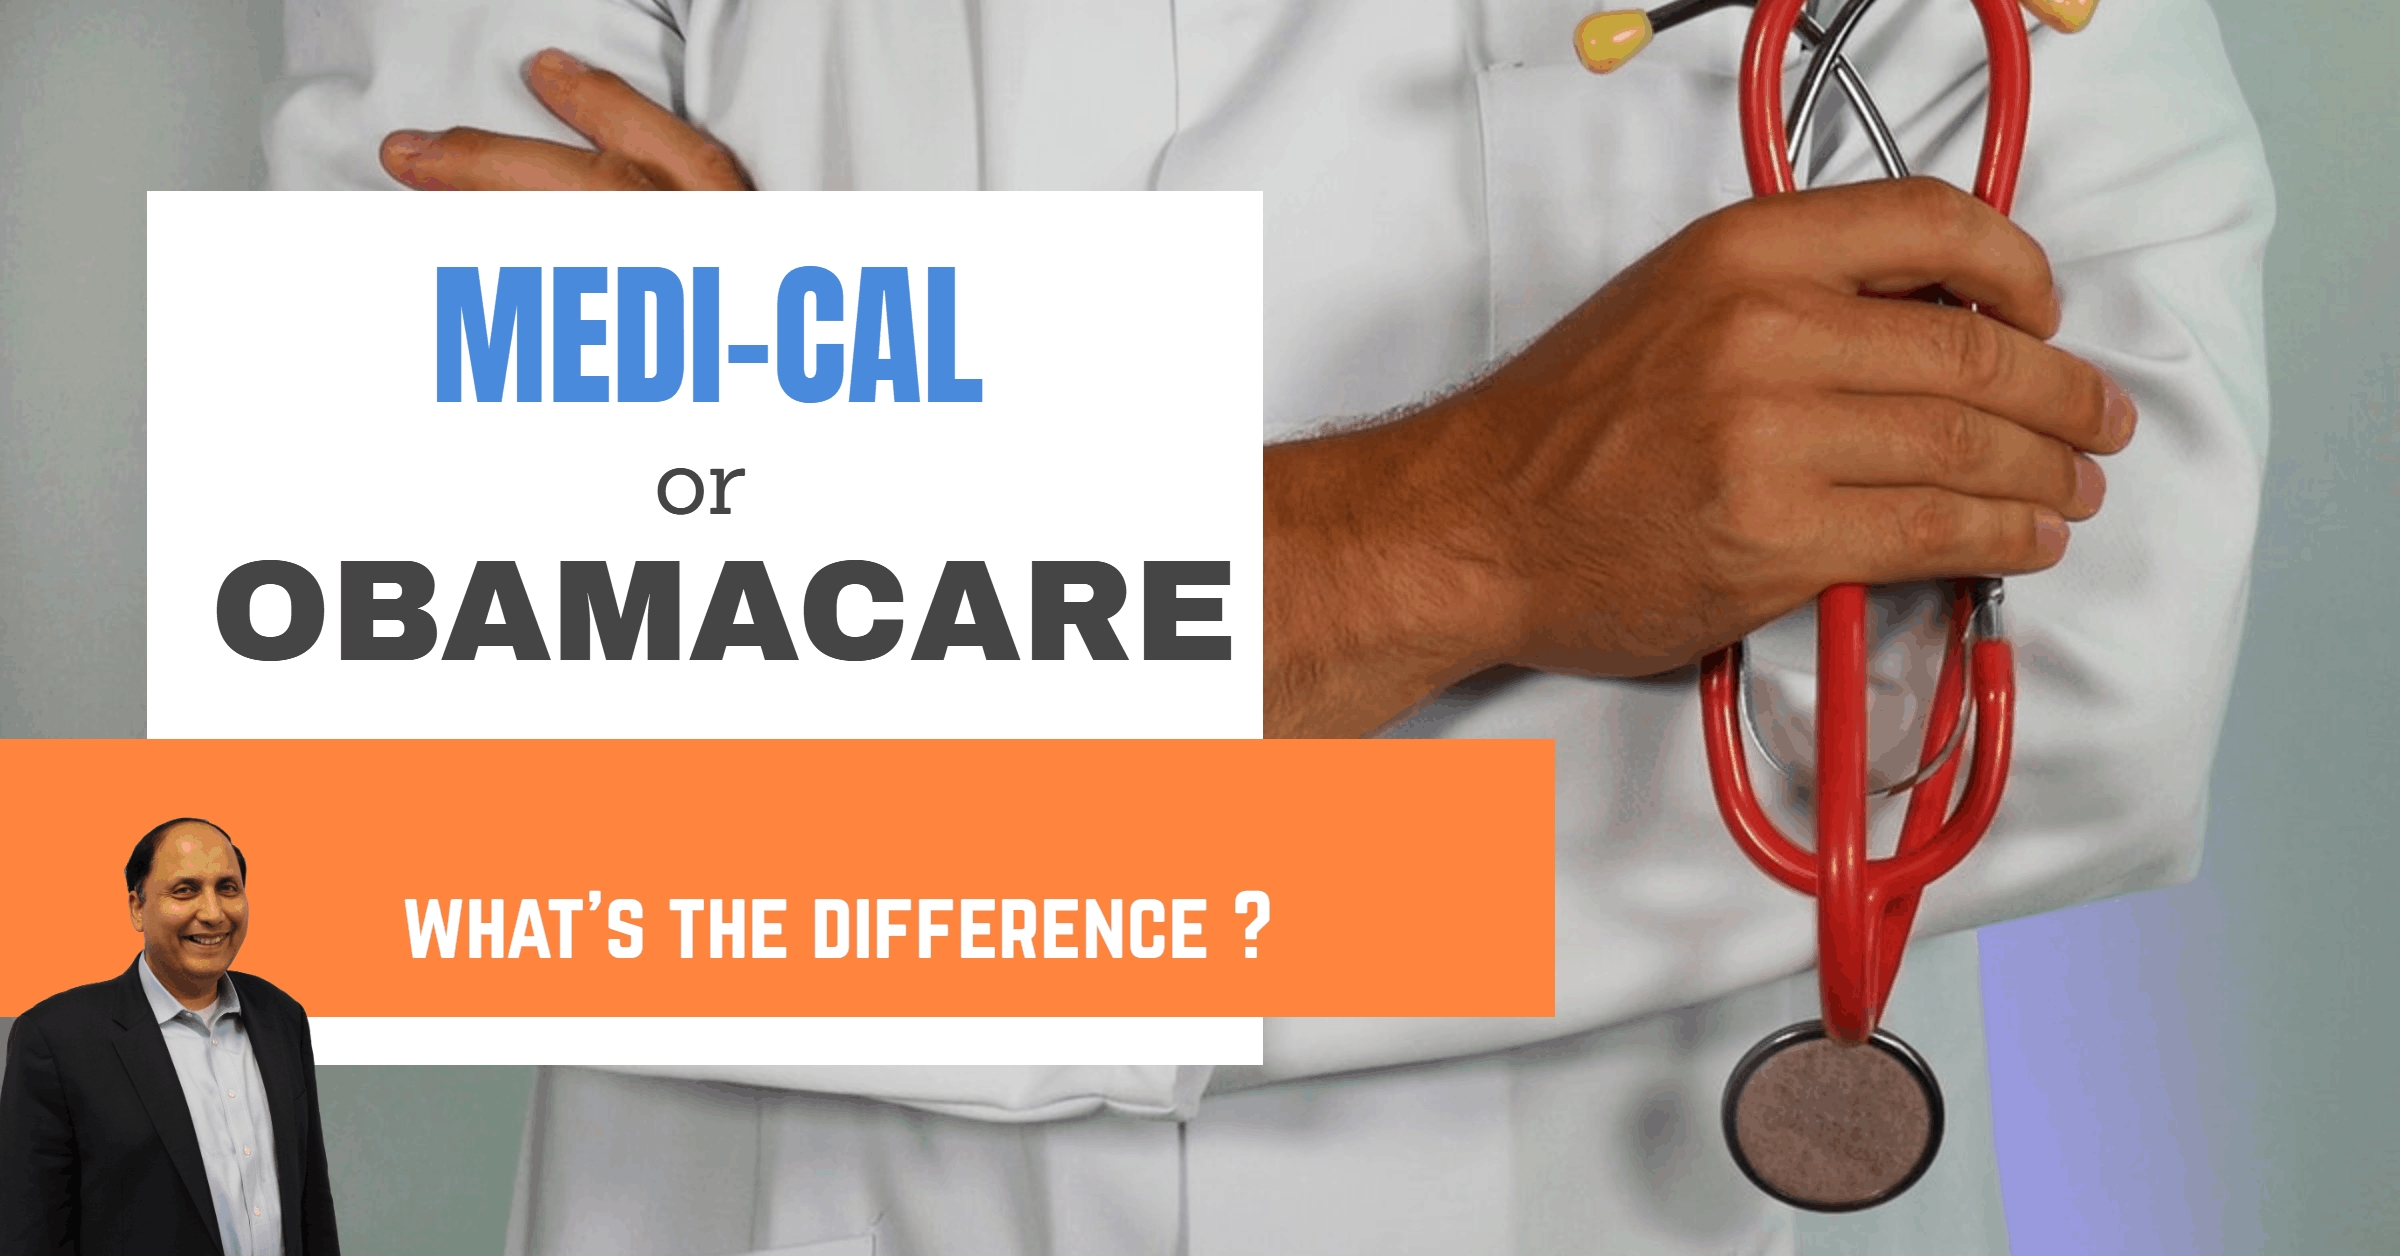 Medi-Cal vs Obamacare - What's the difference?